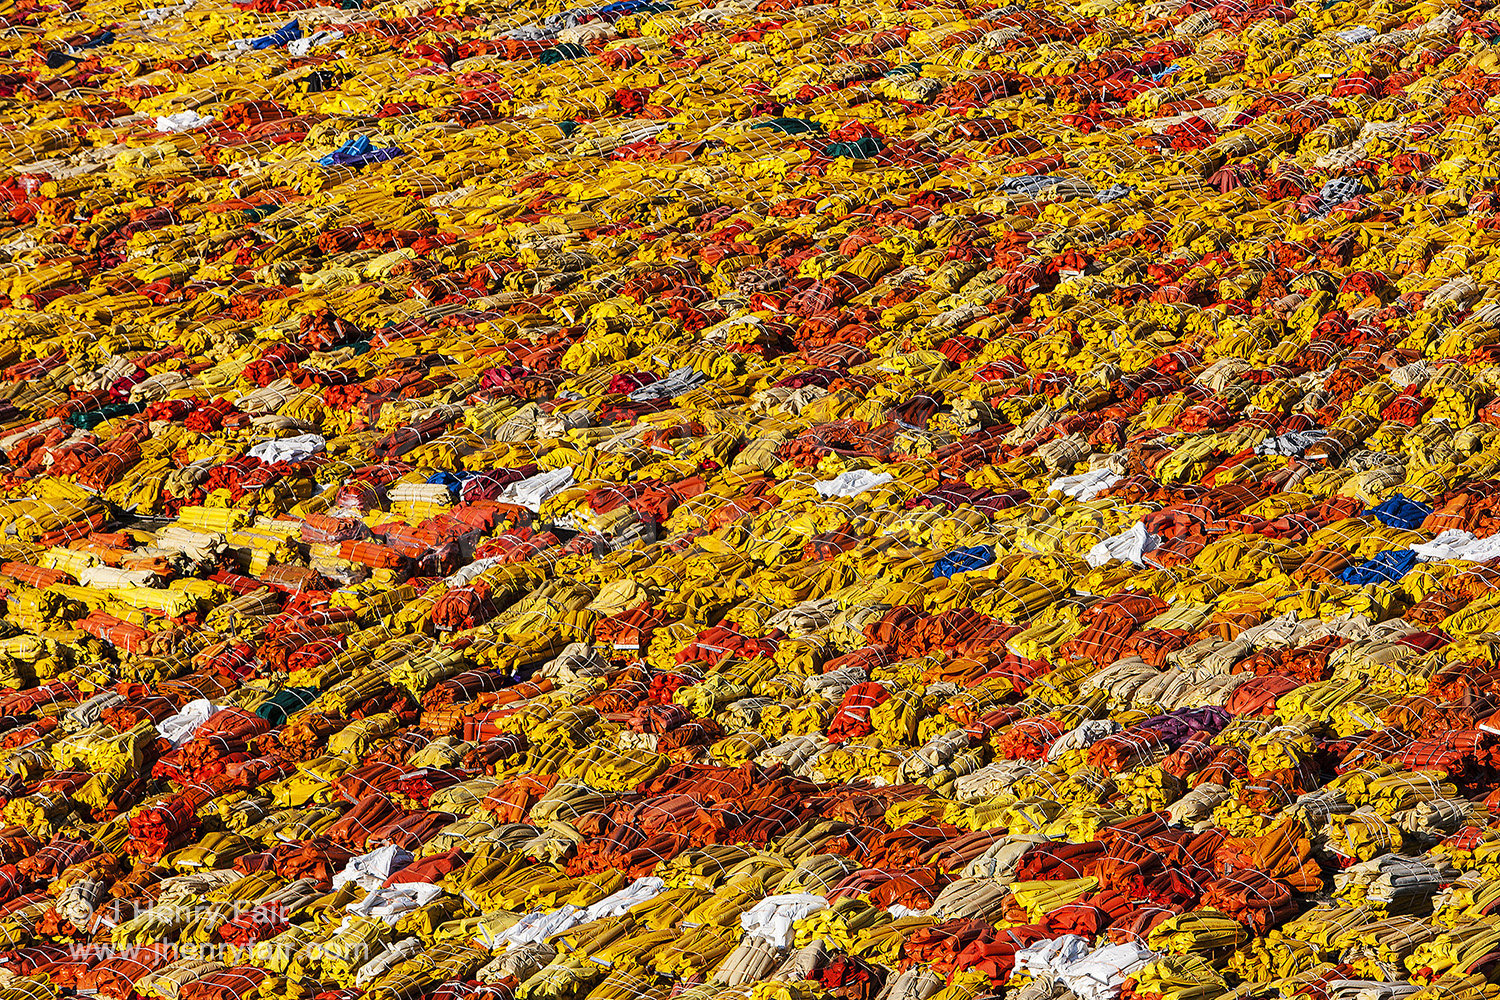 Marine Plastic Litter: Bundled Boom Material Used During Bp Deepwater Horizon Spill In The Gulf Of Mexico